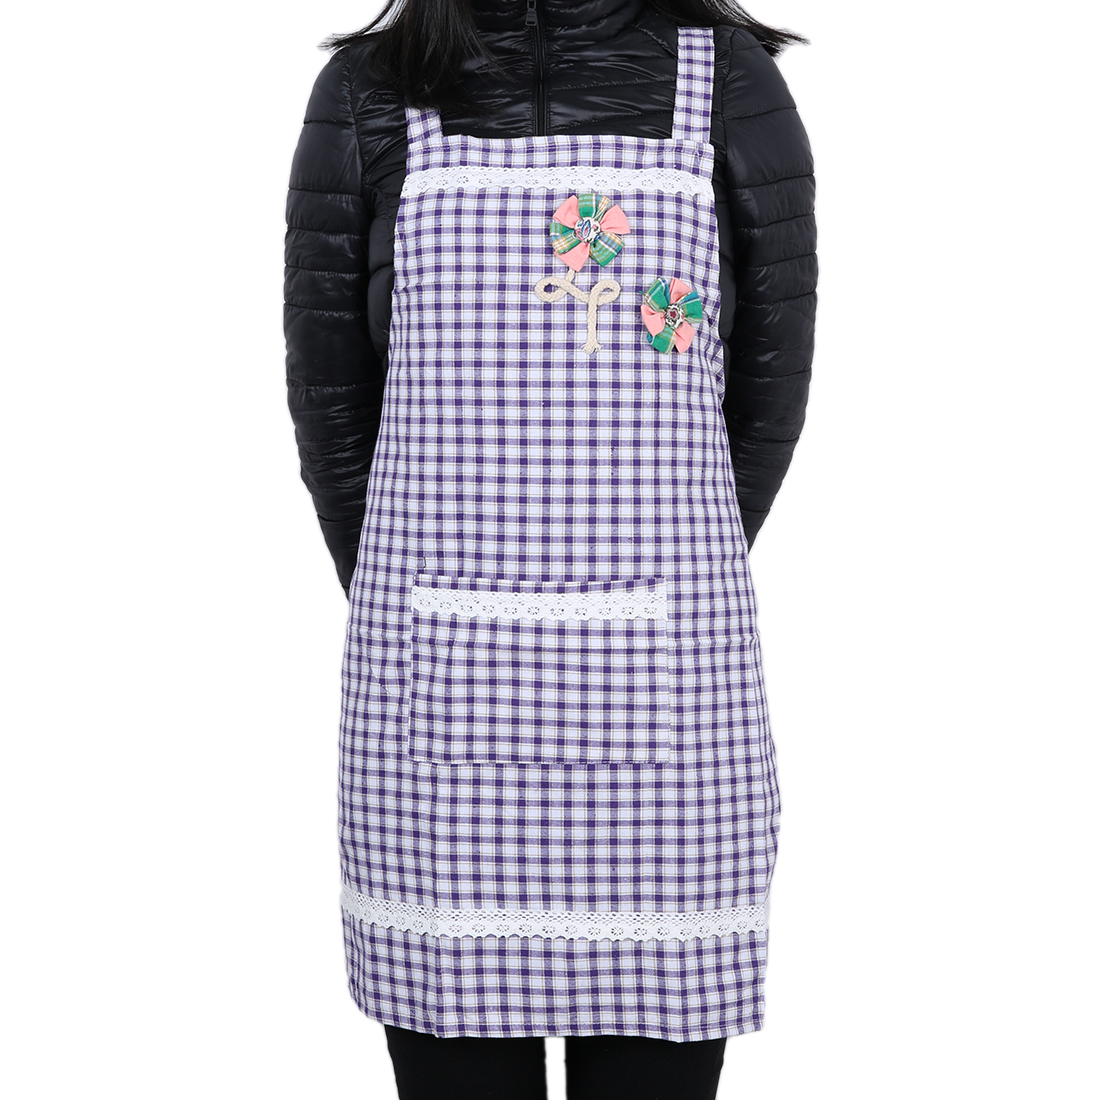 Grid Chefs Kitchen Bib Cooking Apron for Women Deep Purple